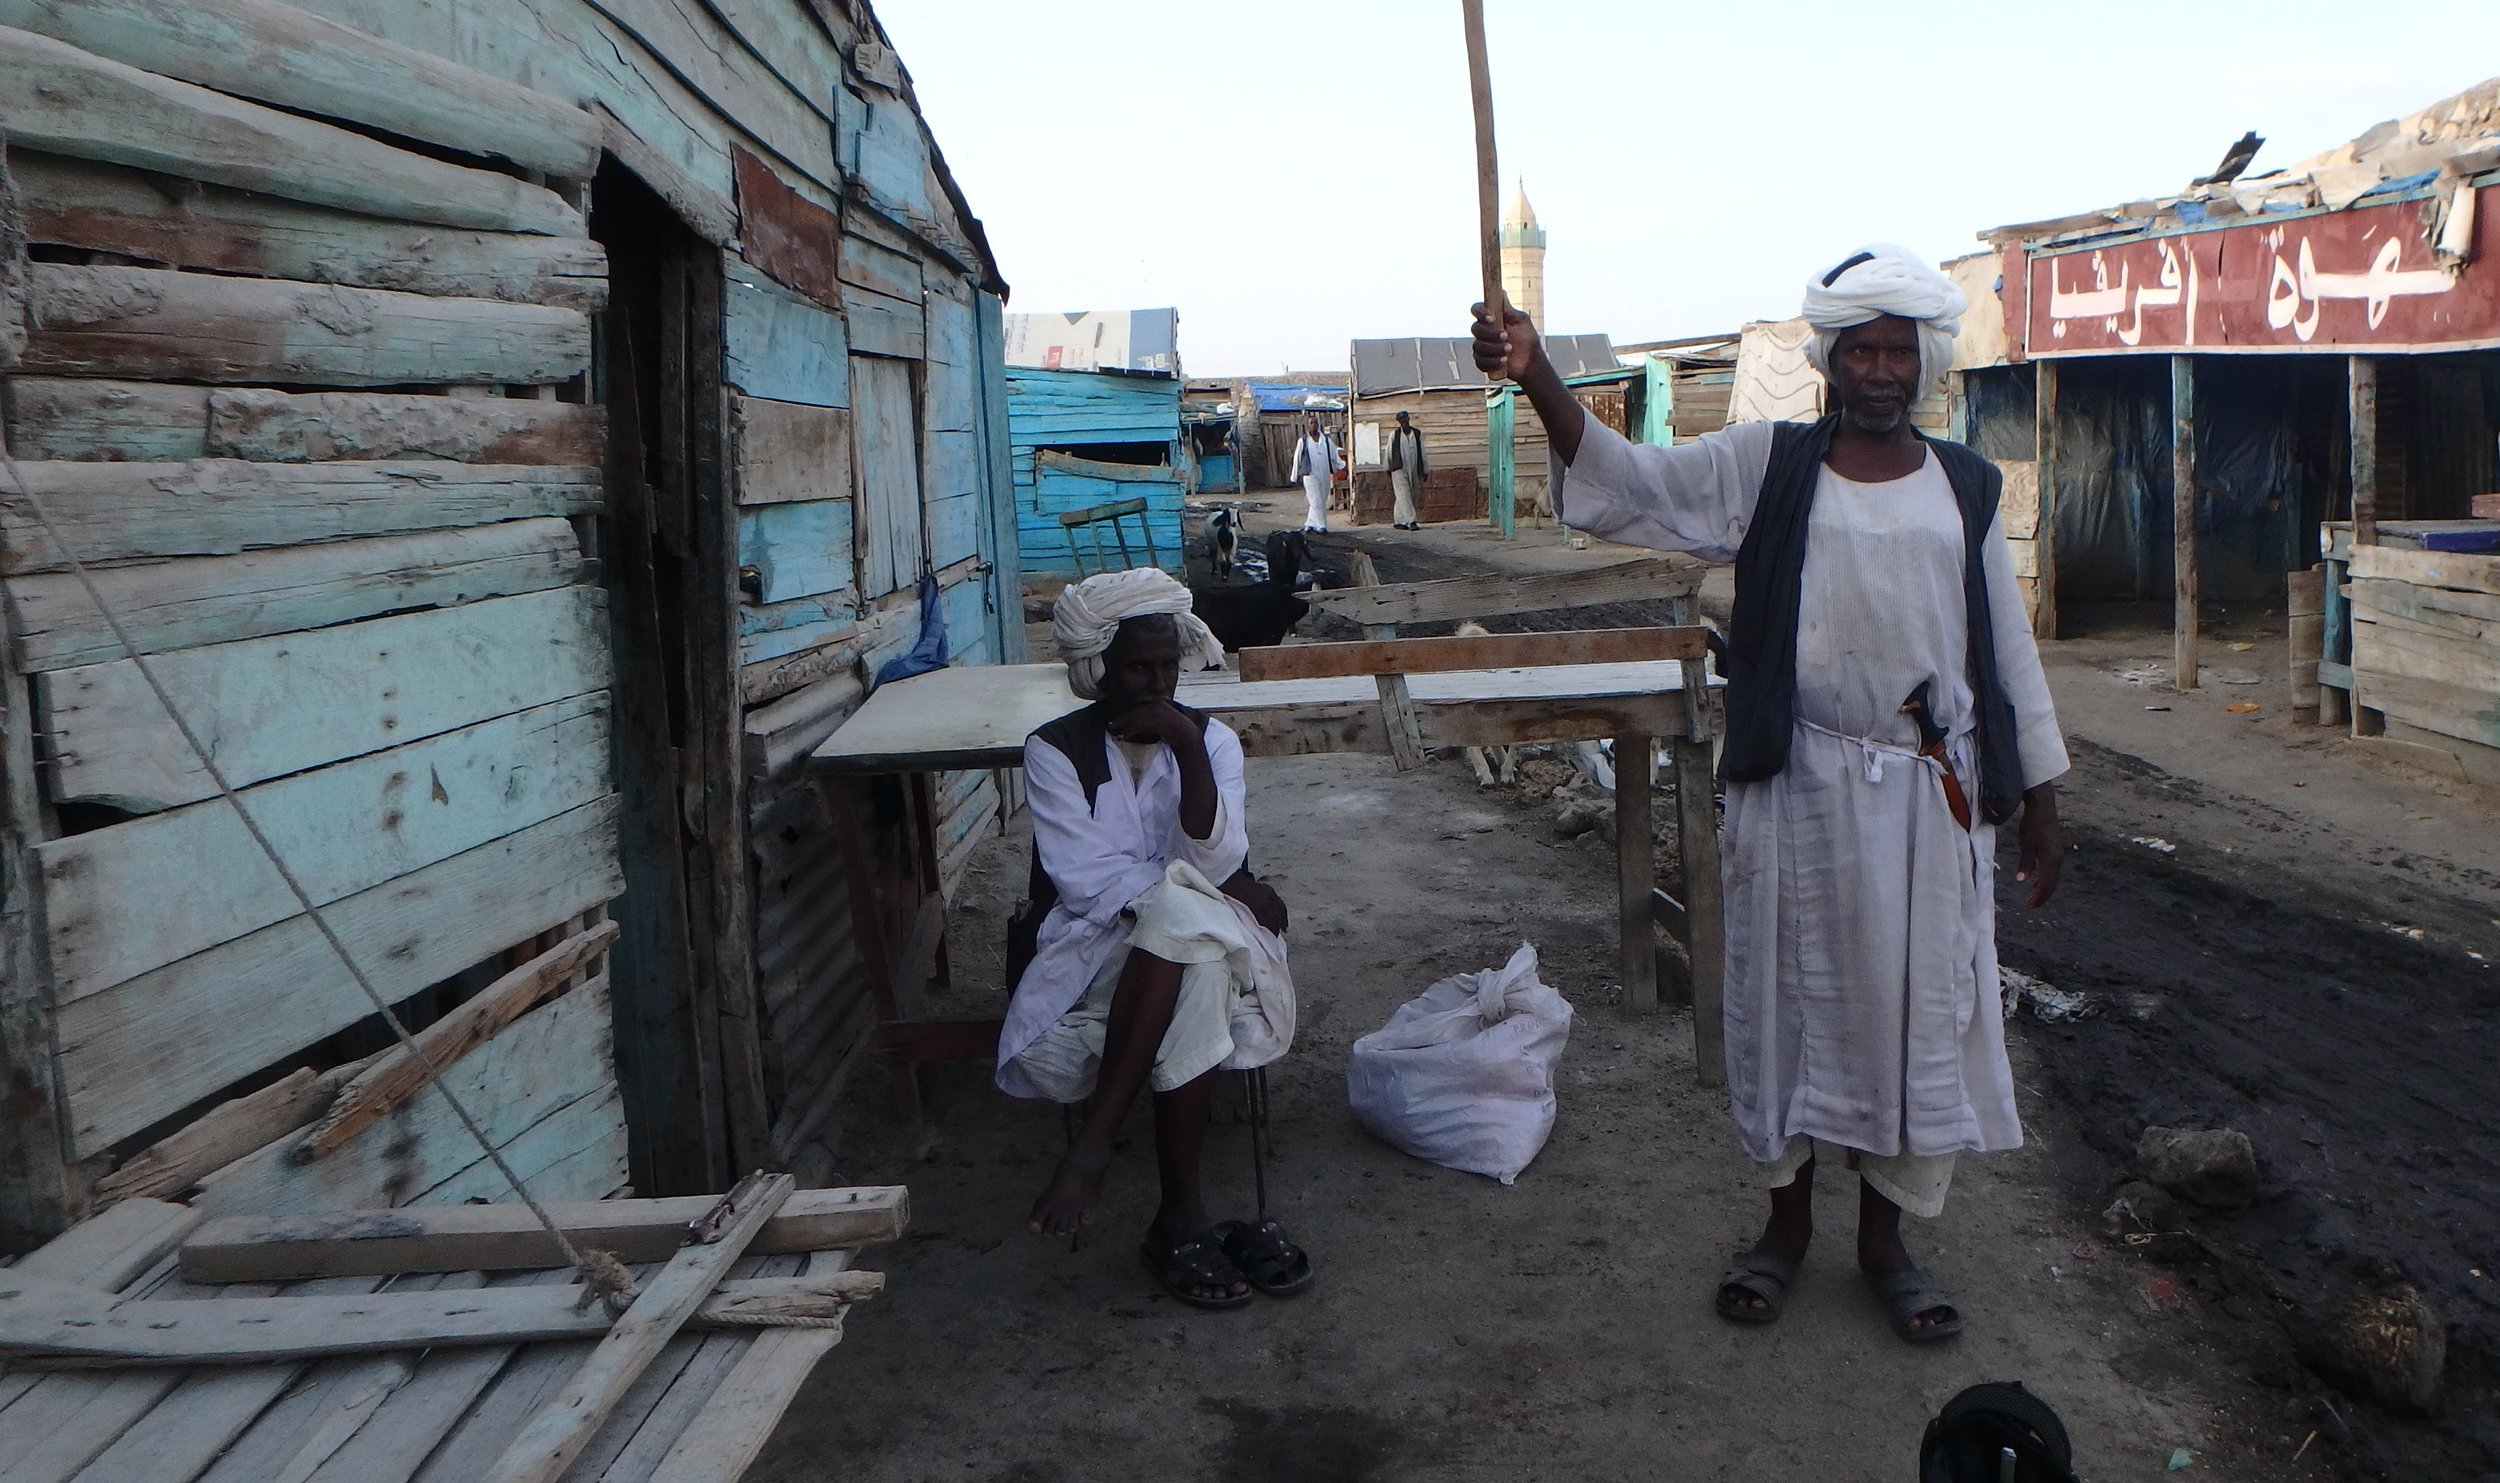 Sadly, Suakin's urban area has been reduced to an impoverished shanty town with the move to Port Sudan. It's still full of some great characters though.